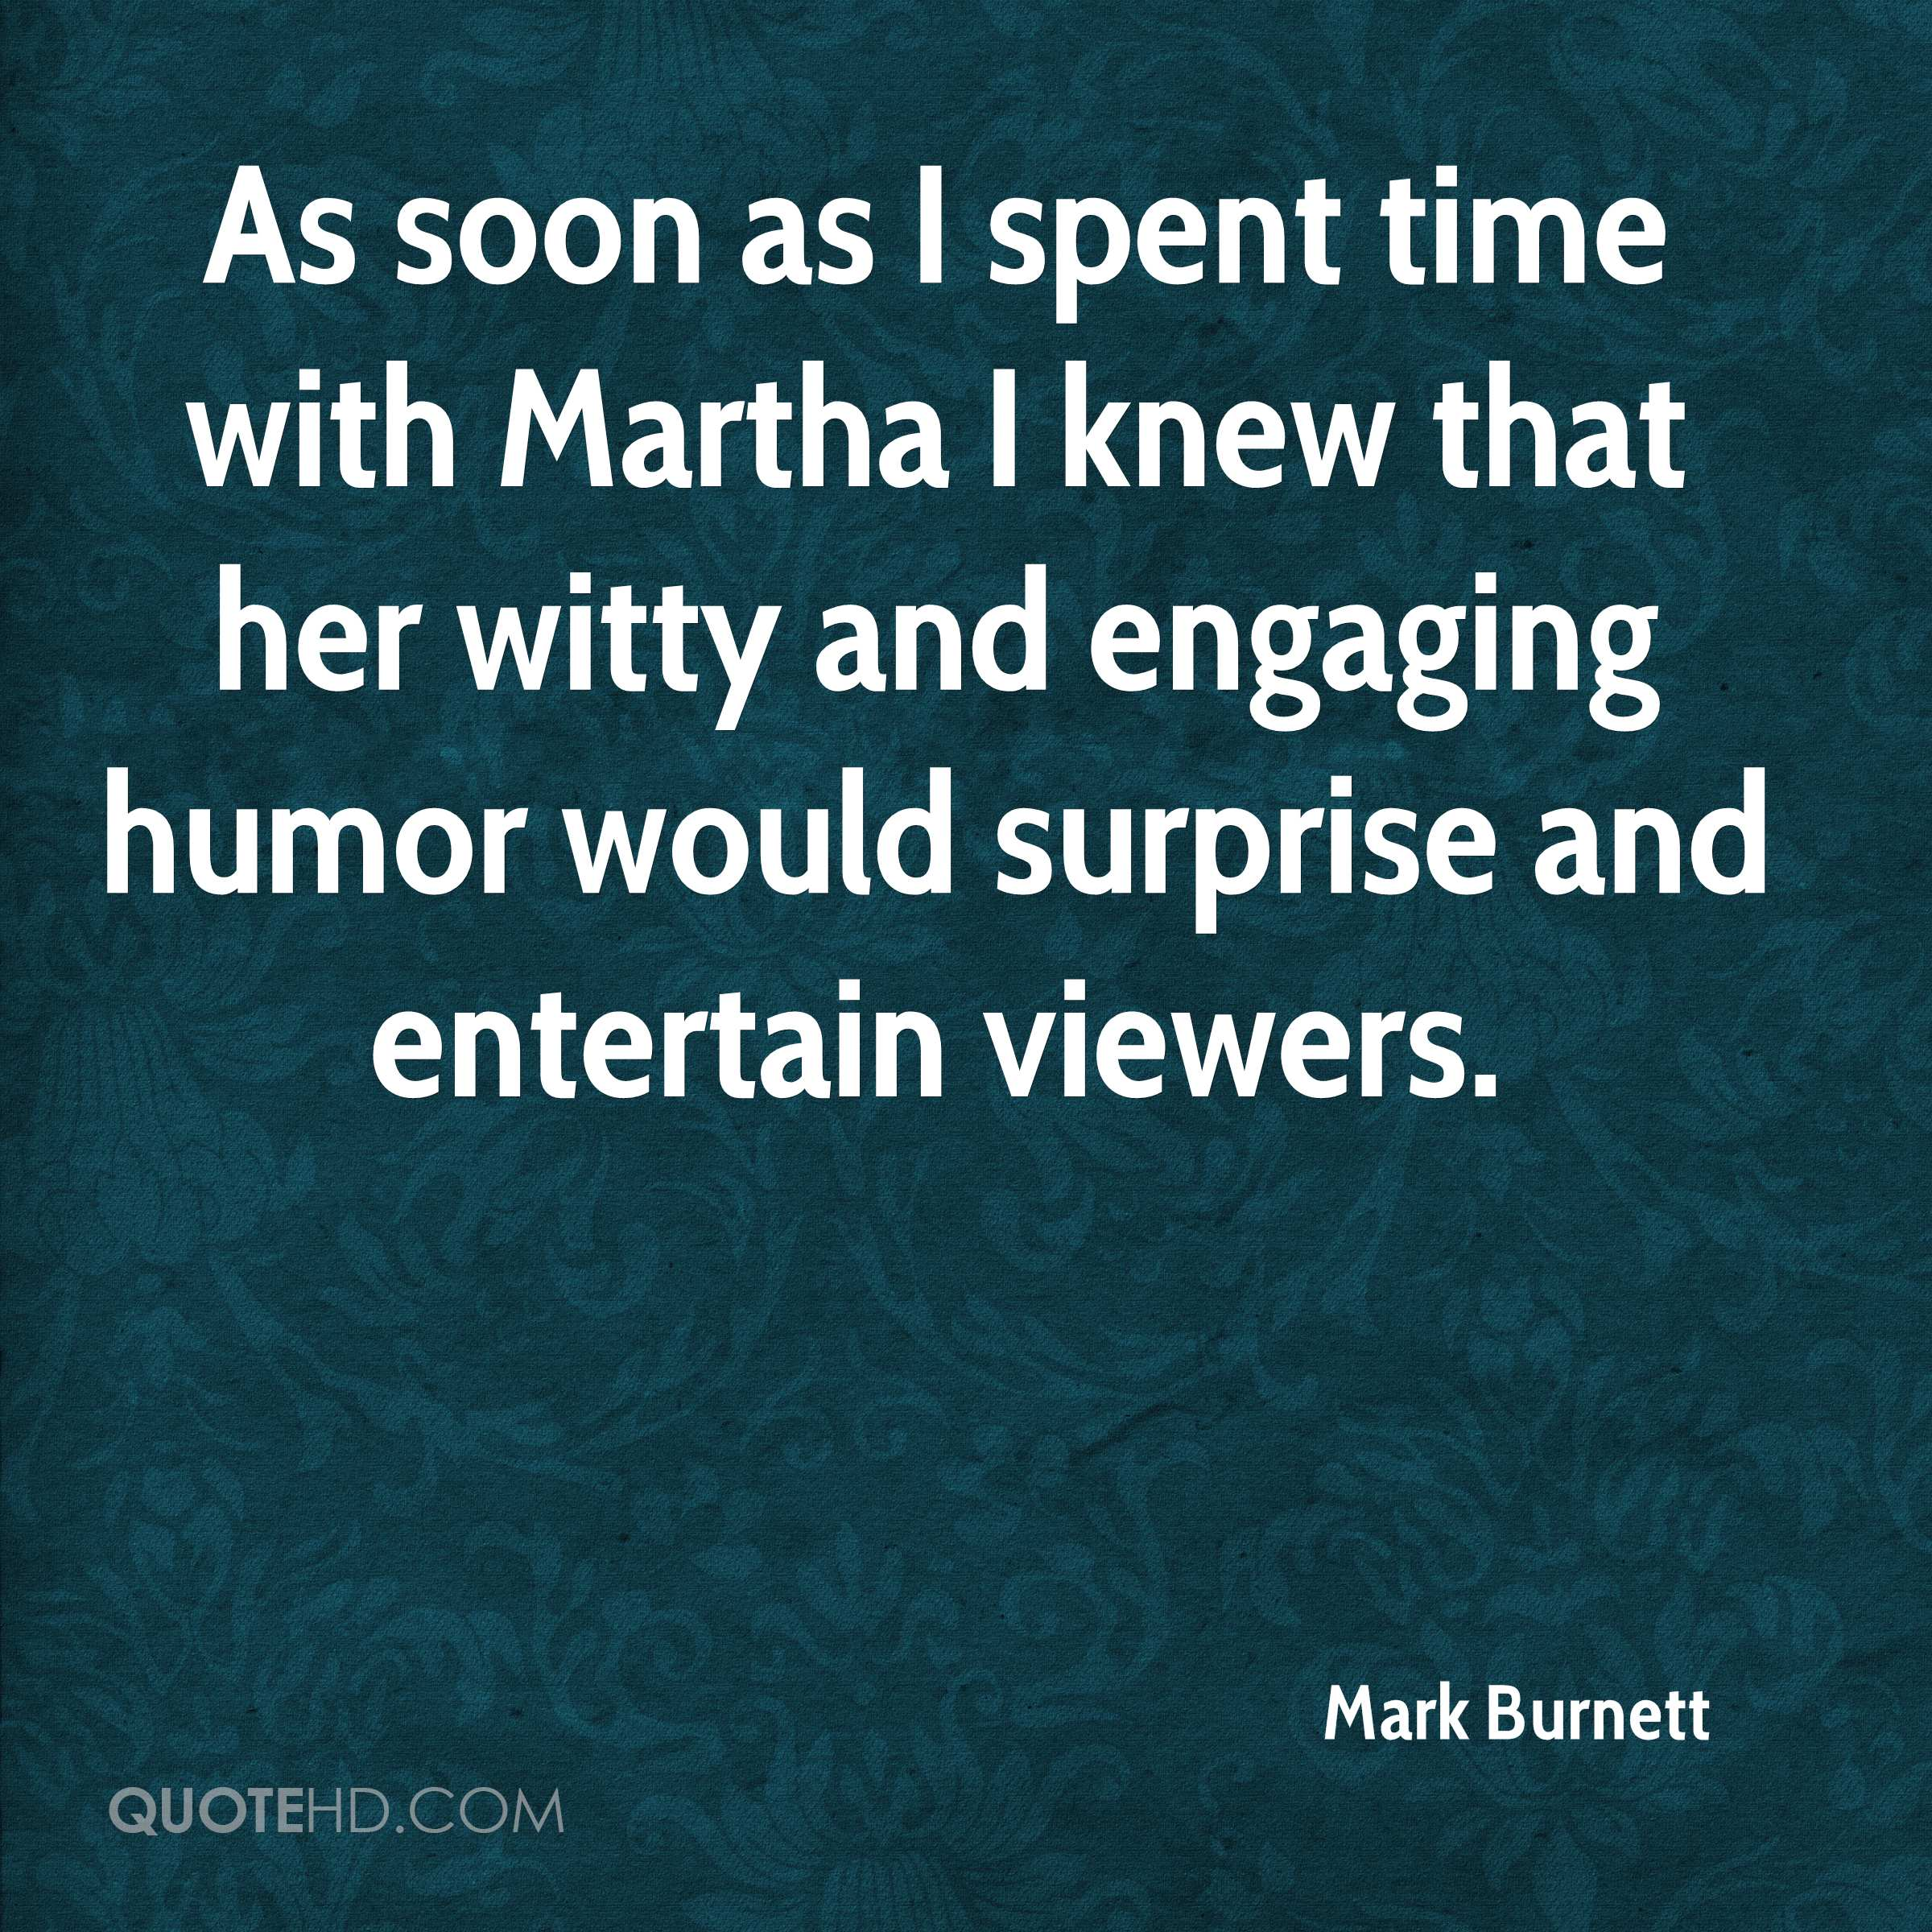 As soon as I spent time with Martha I knew that her witty and engaging humor would surprise and entertain viewers.